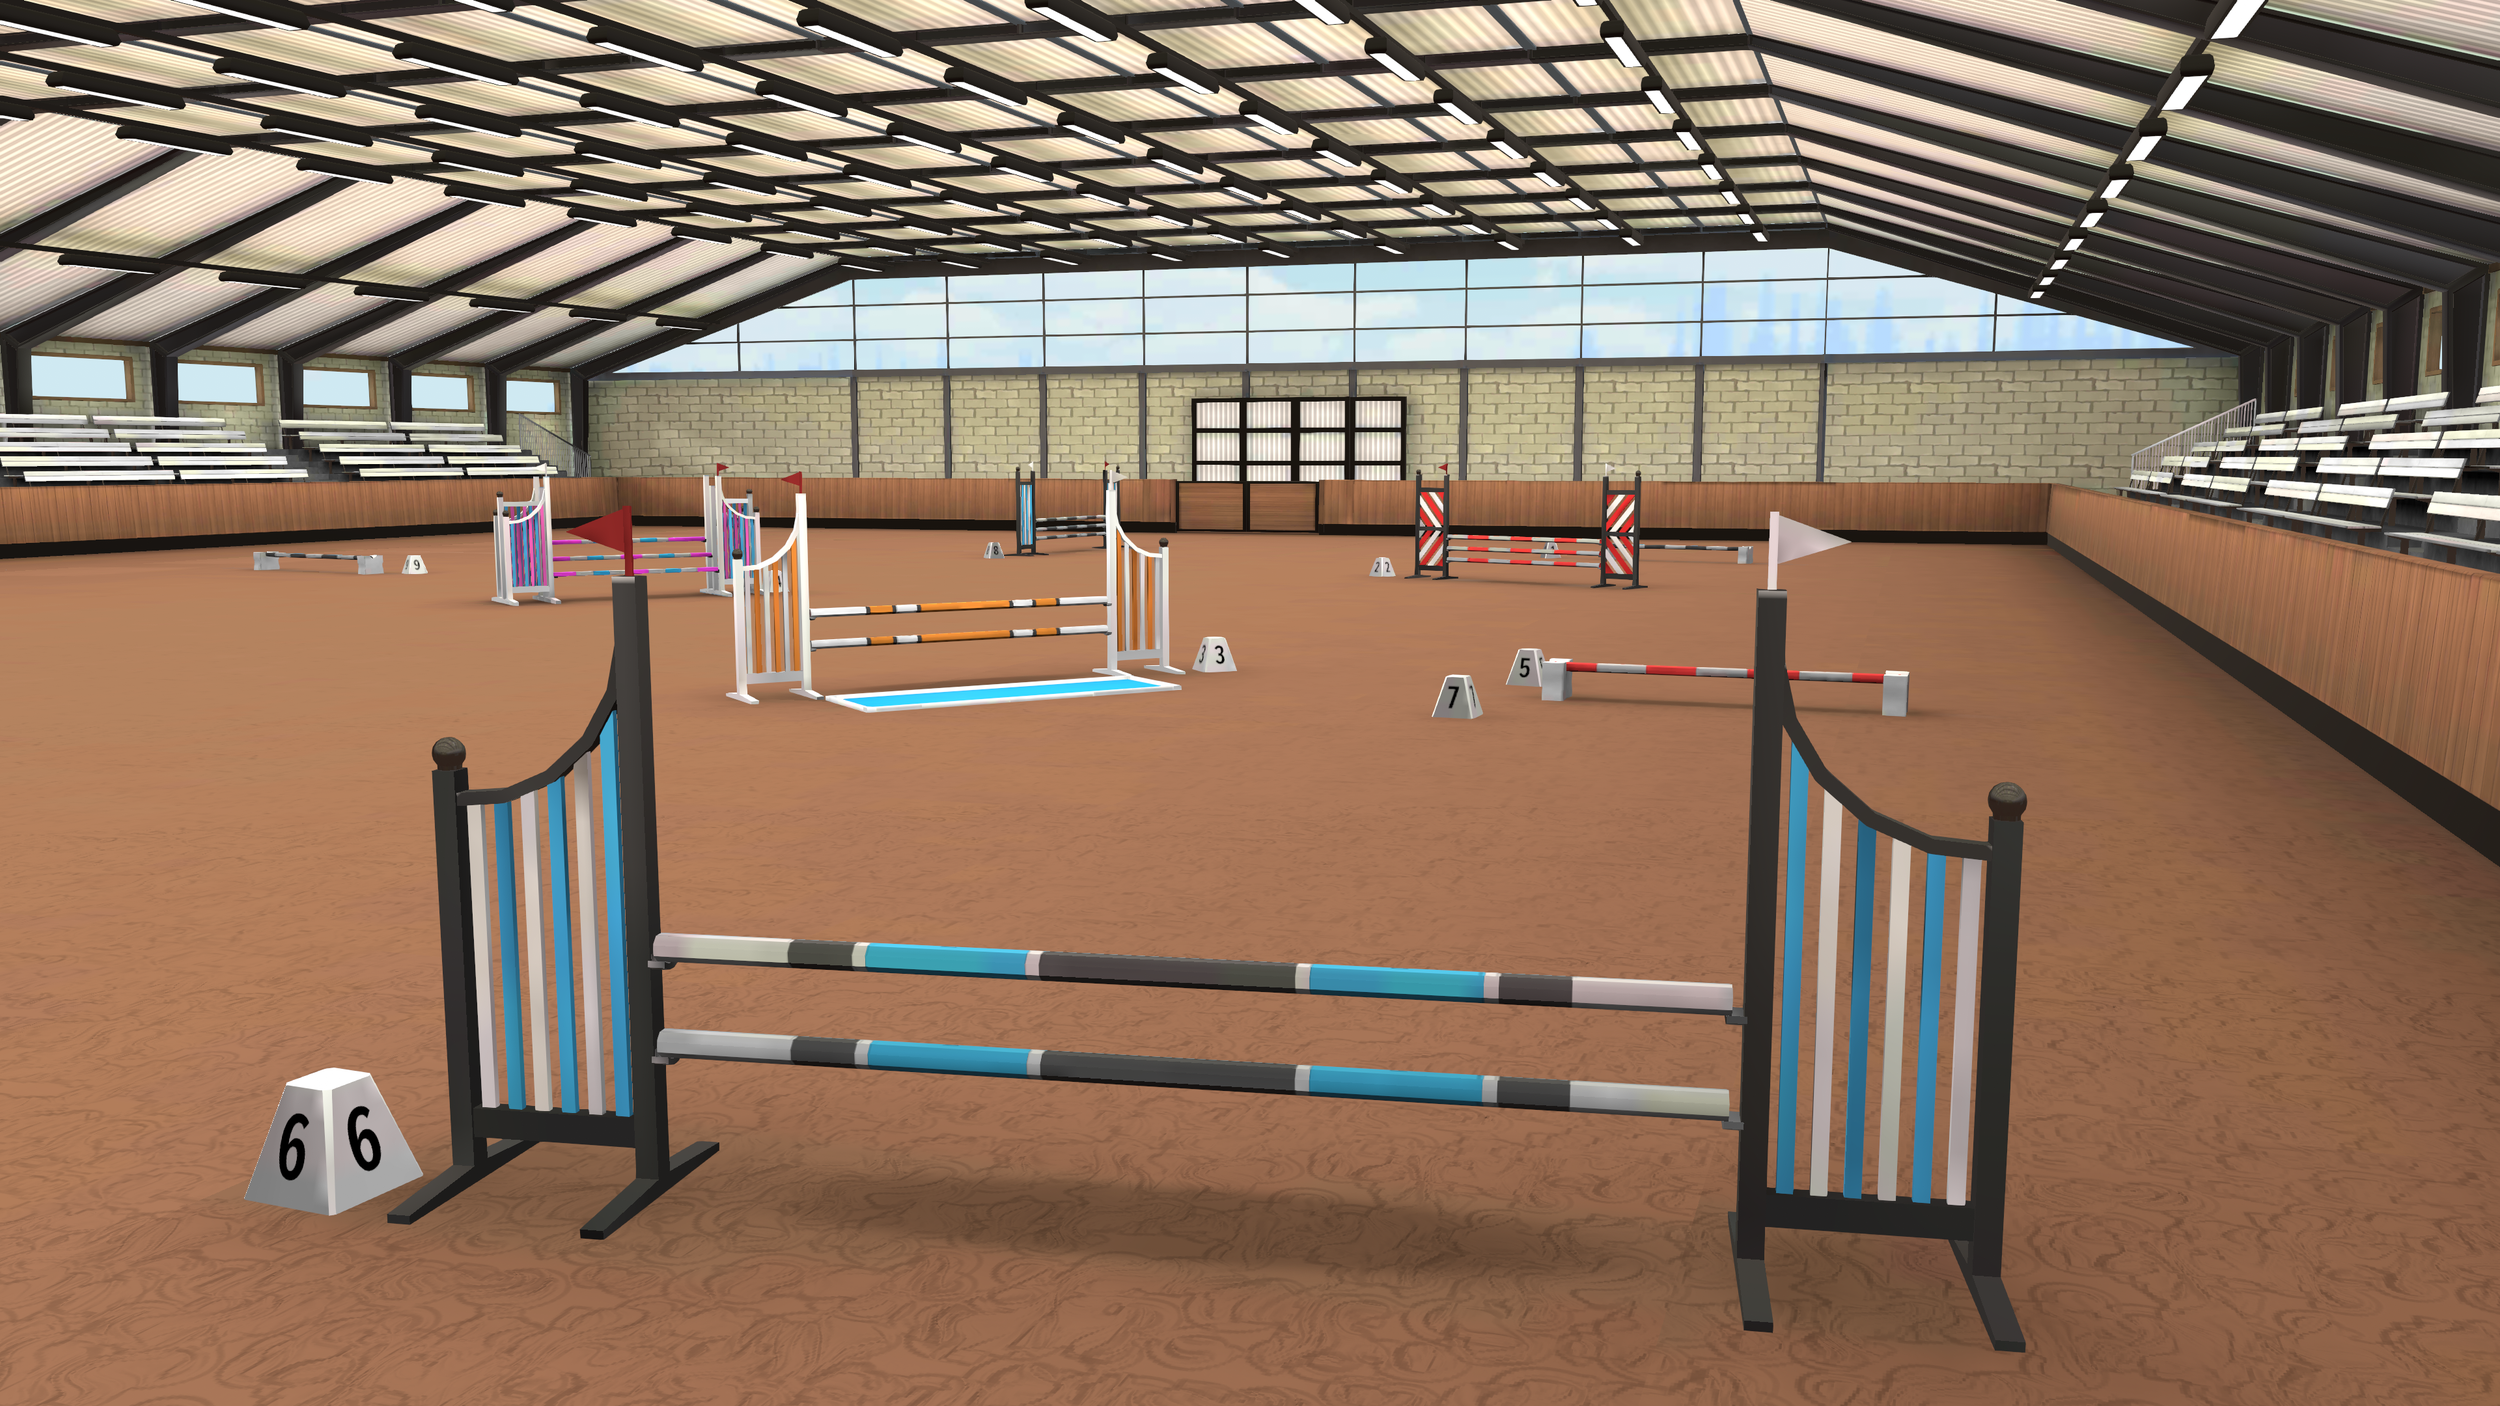 Show Jumping and Dressage are the core disciplines that  Equestrian  will focus on, but more may be added at some later point